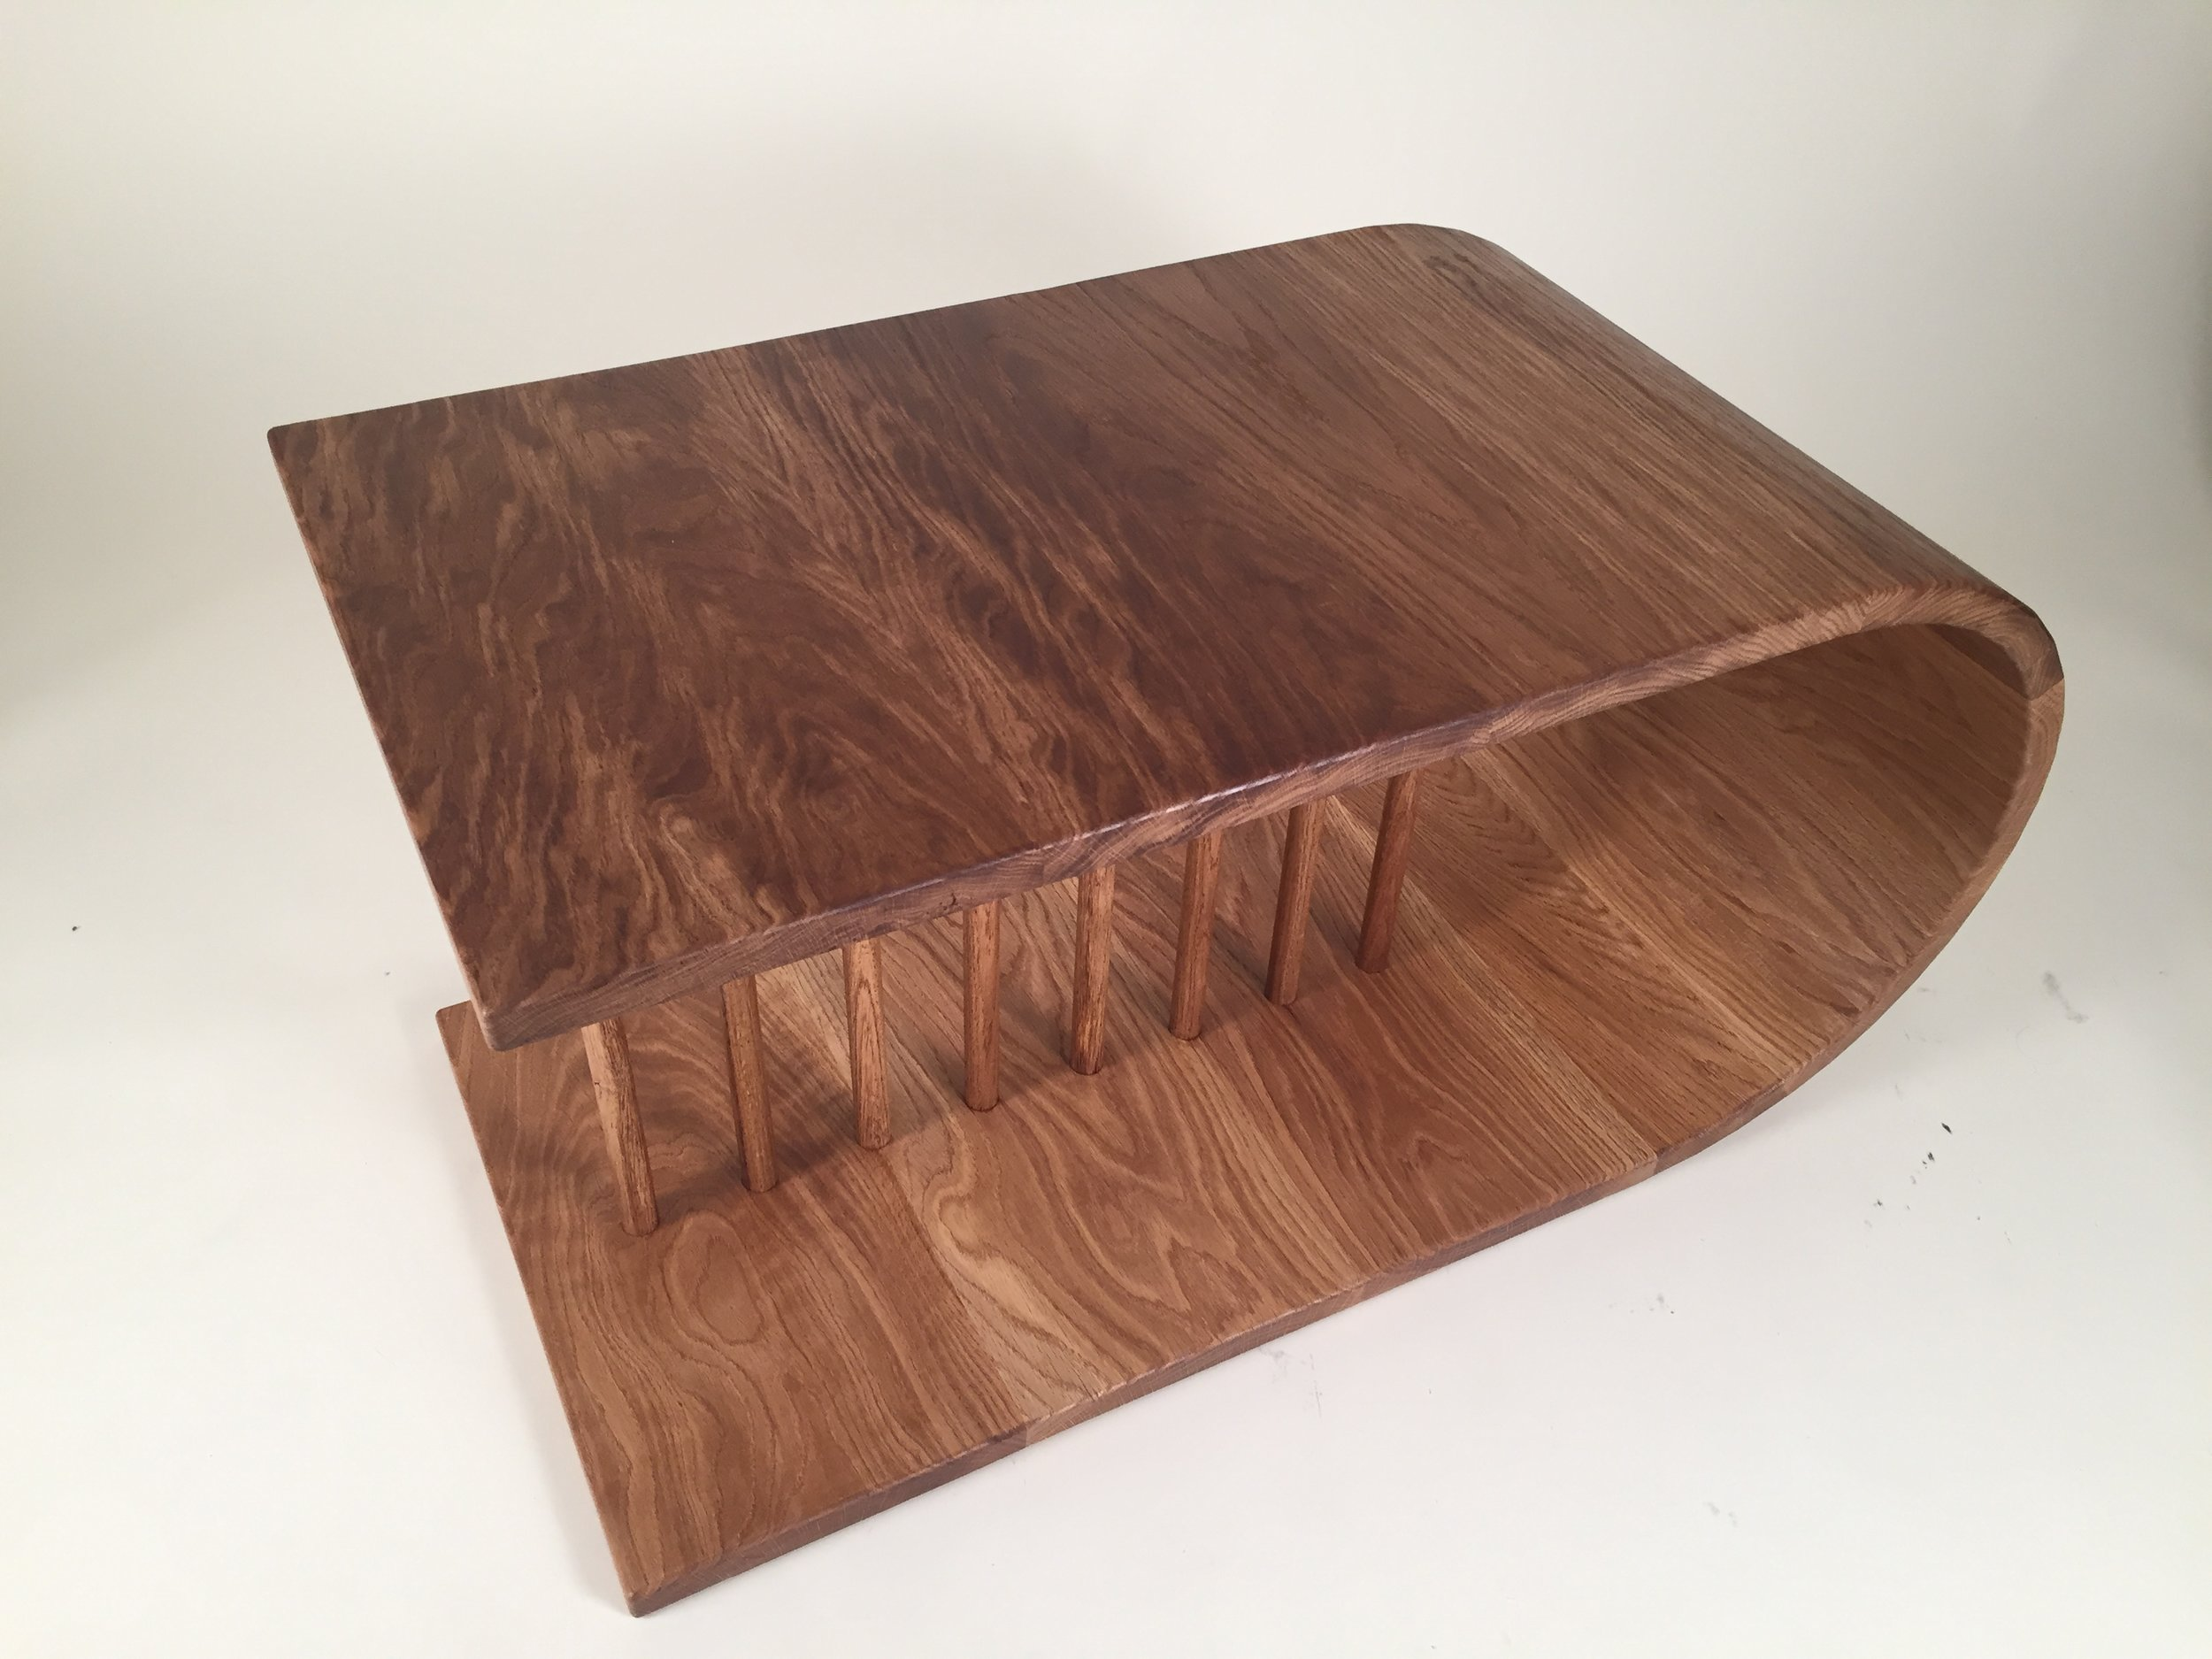 Euclid Coffee Table in oiled white oak